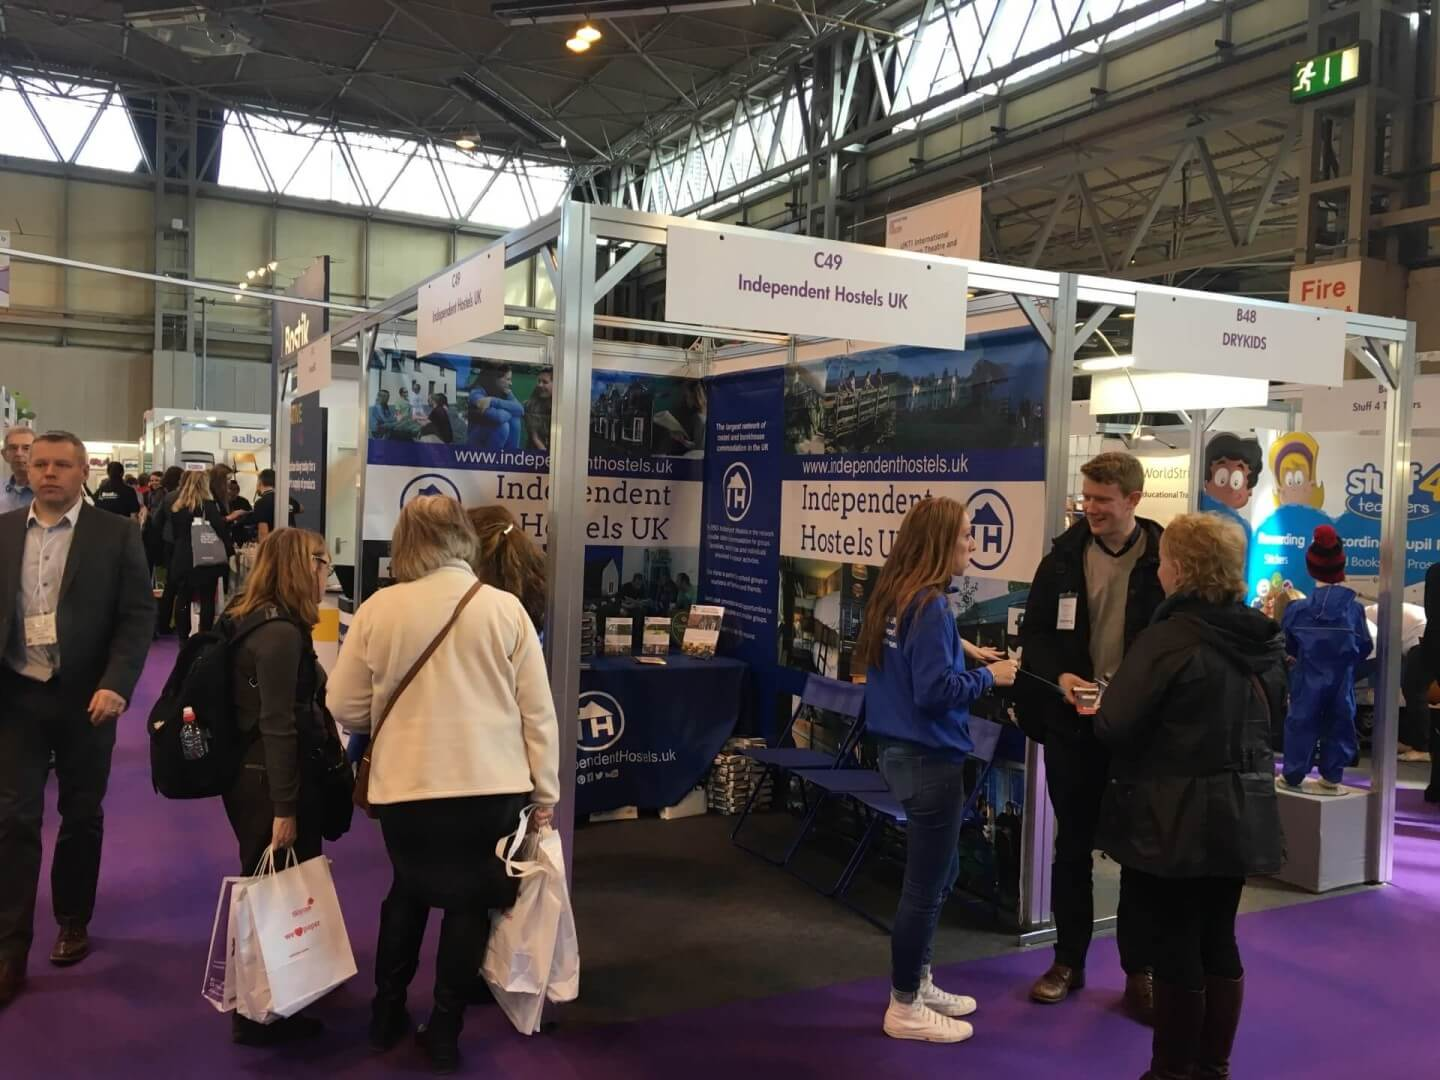 Independent Hostels stand at the Education Show